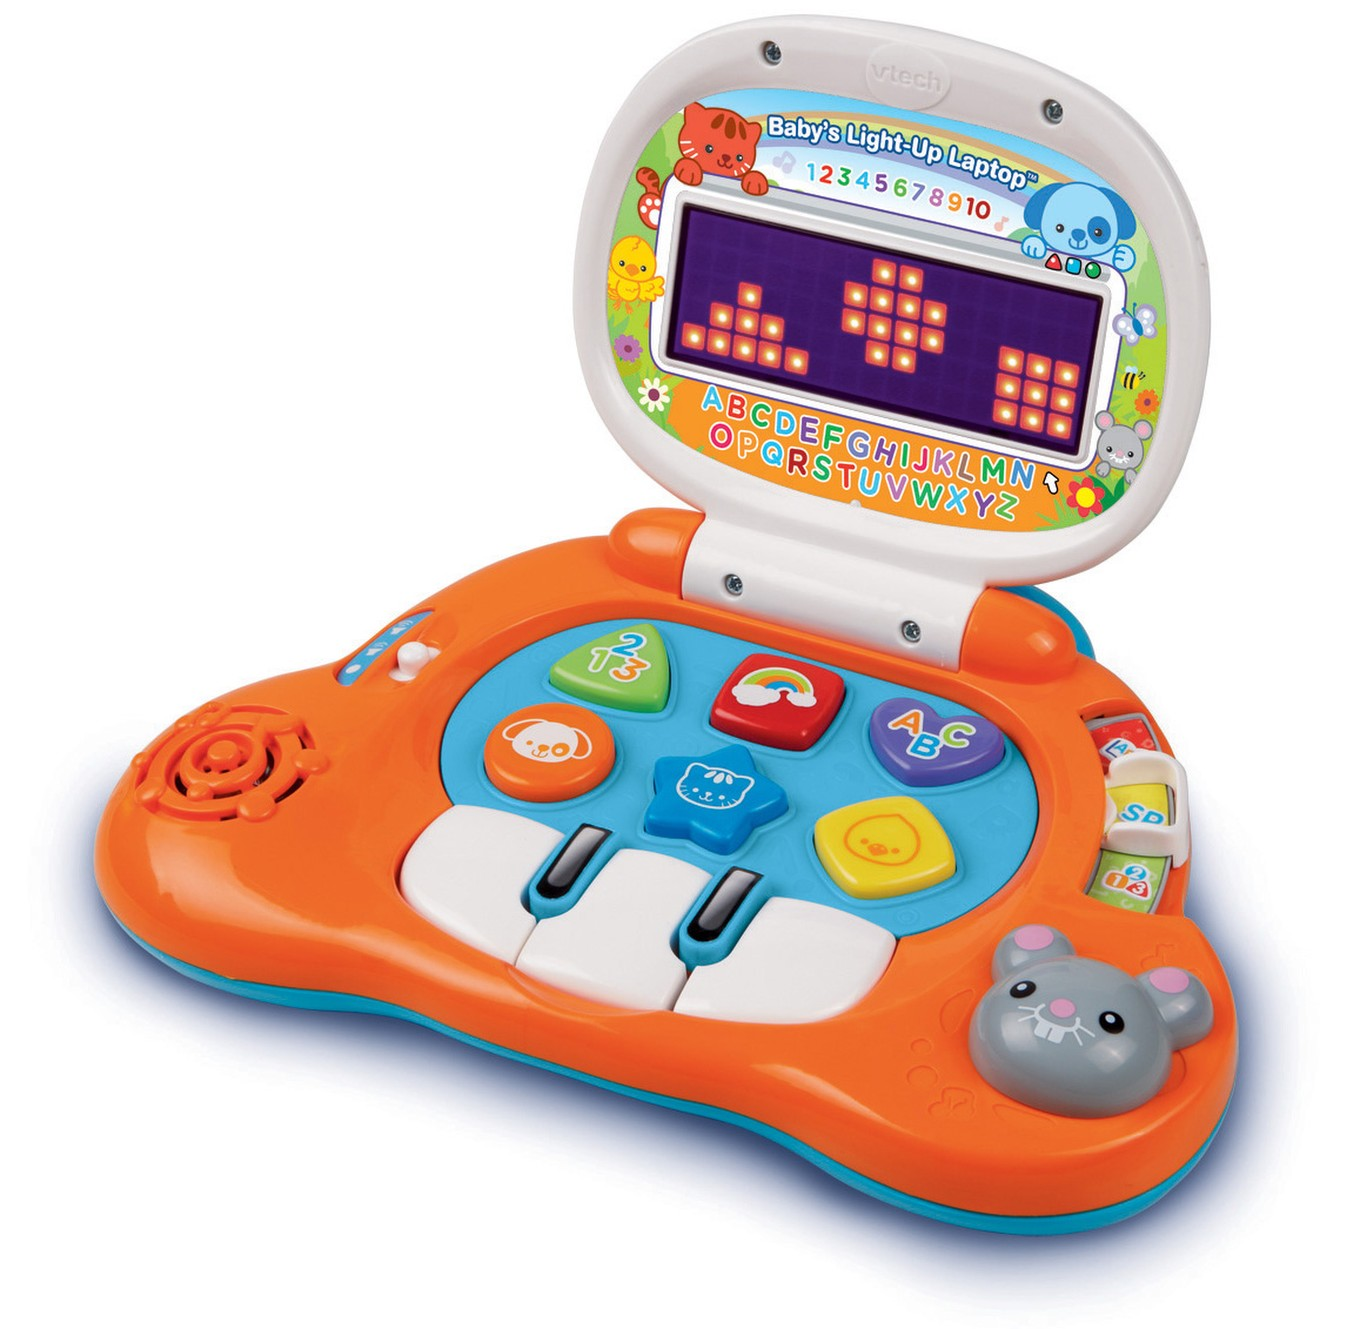 Baby Learning Toys : Baby s light up laptop